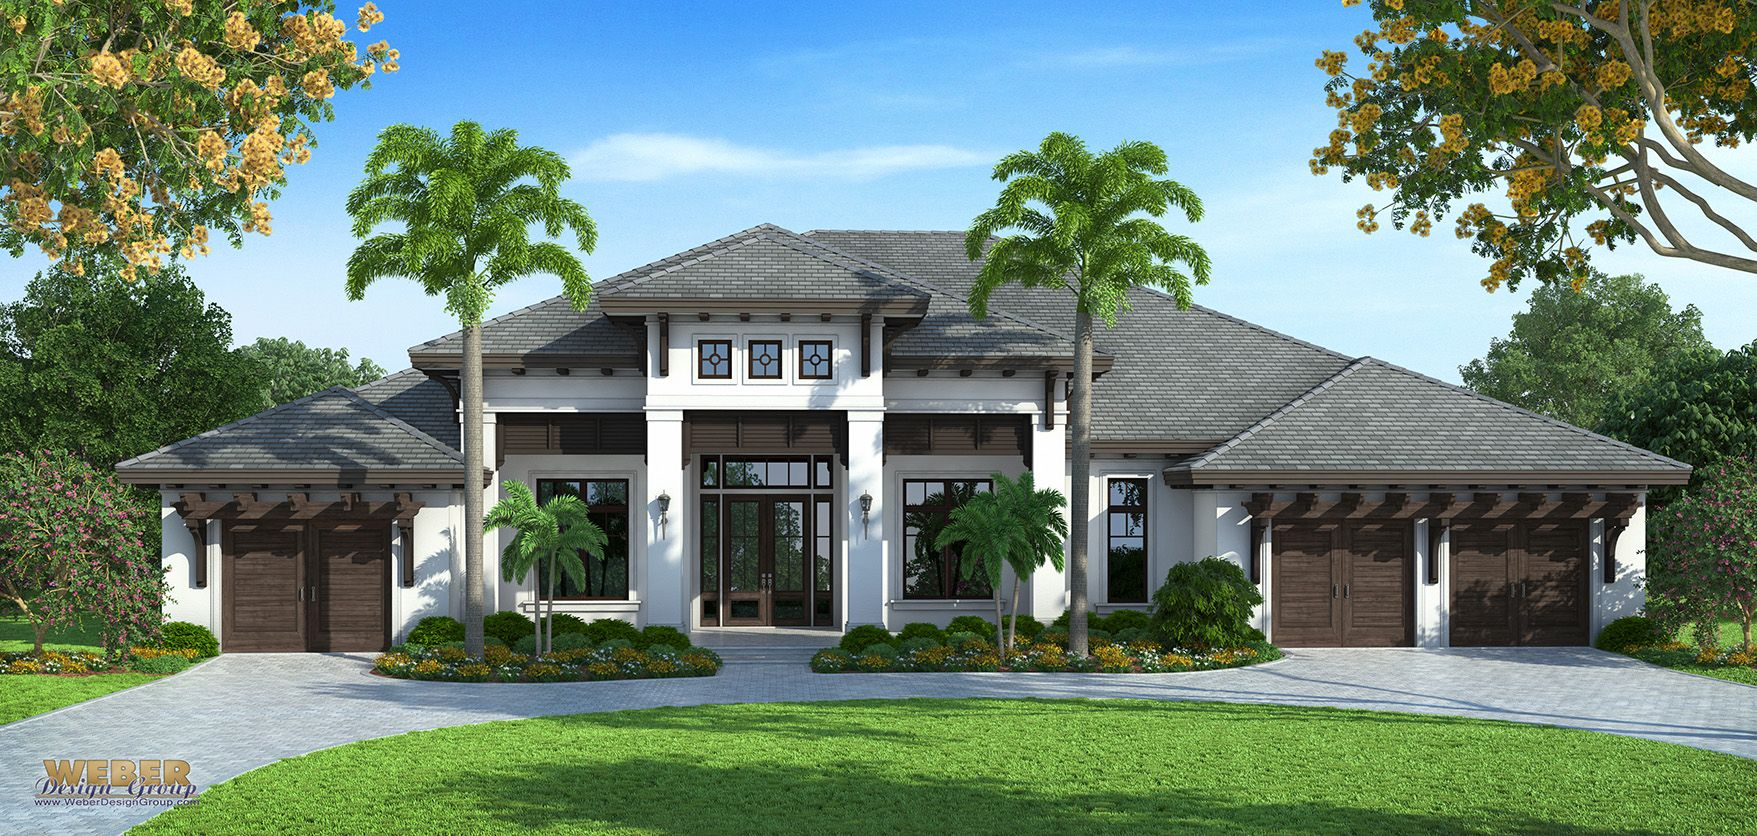 Transitional west indies style house plans by weber design Florida style home plans